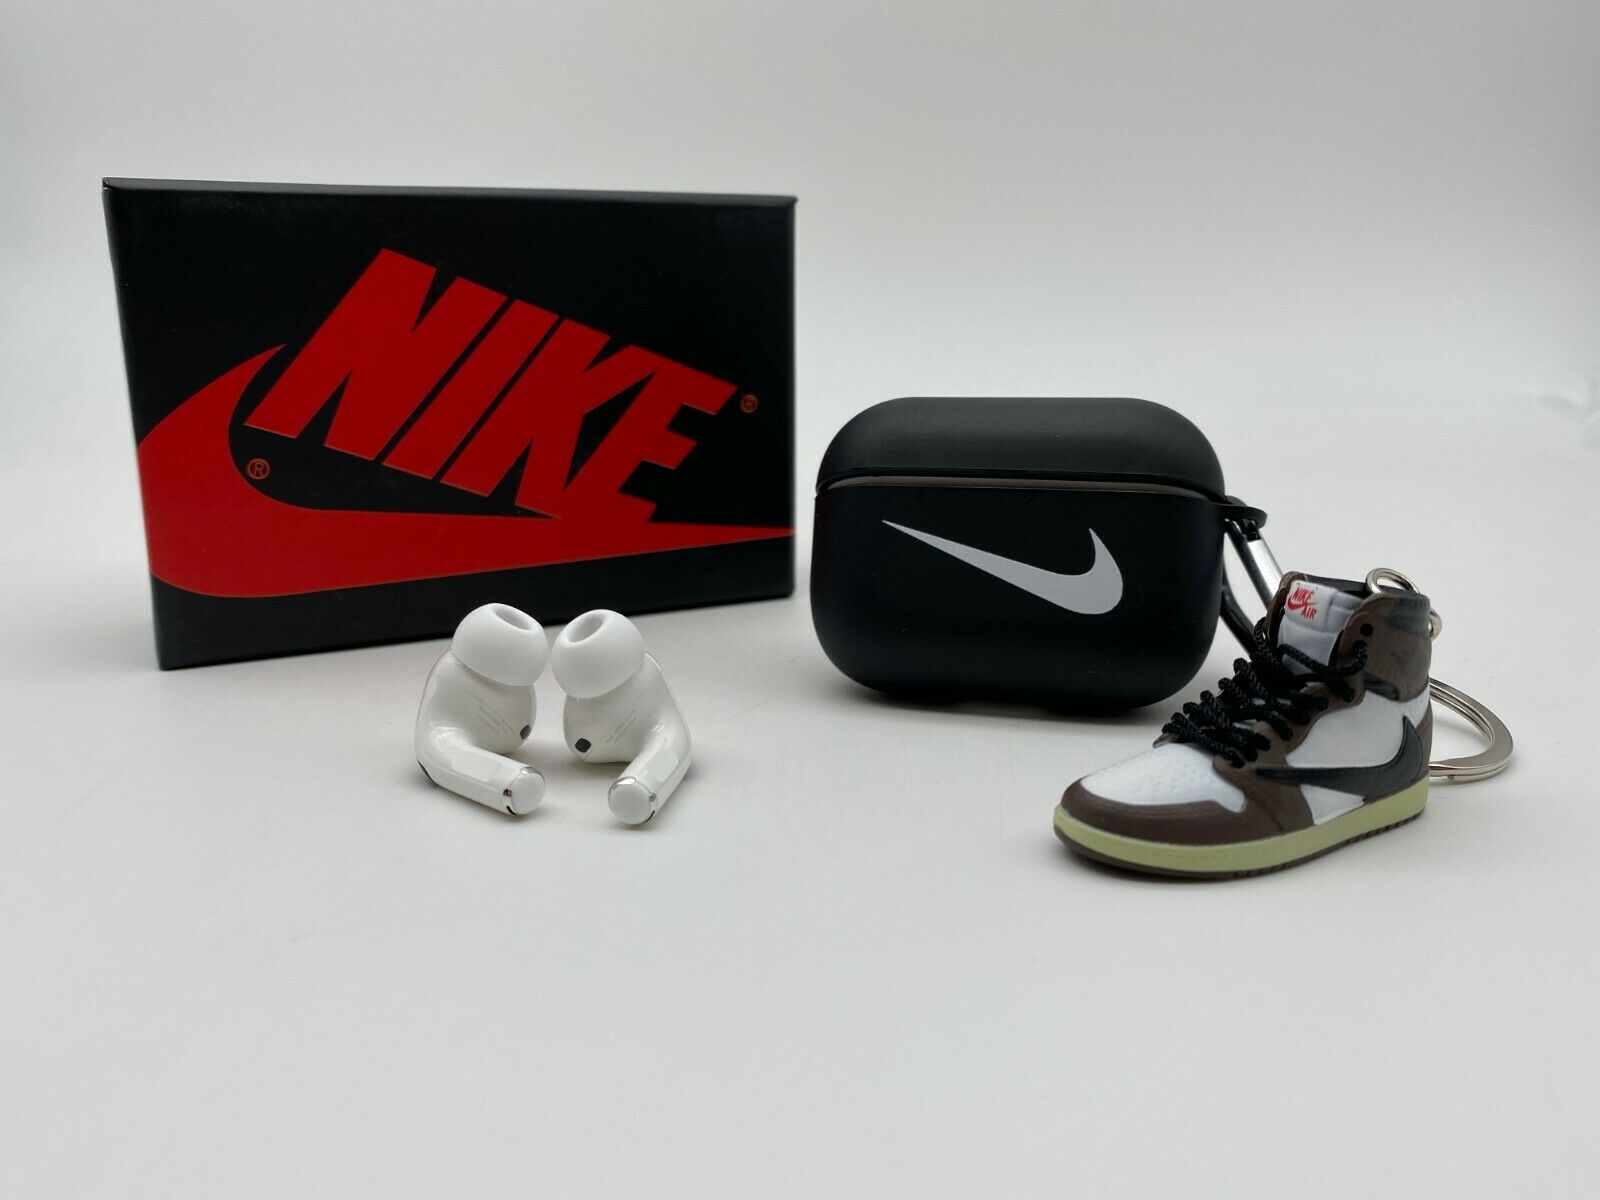 USA Seller Hypebeast Sneakerhead Inspired Soft TPU Airpods Case for Apply Airpods and Airpods Pro